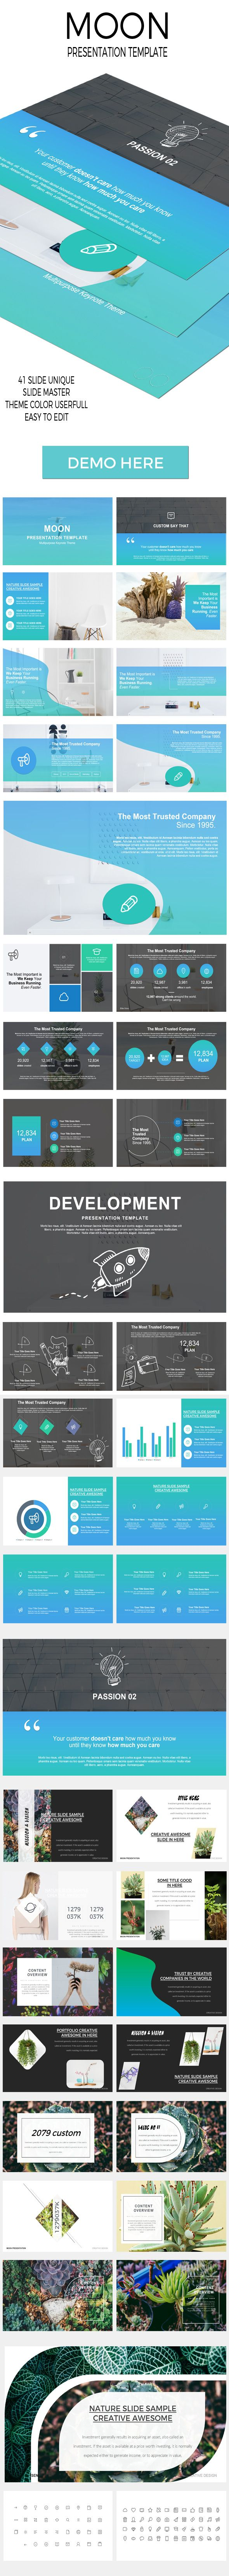 Moon powerpoint presentation template pinterest powerpoint moon powerpoint presentation template pinterest powerpoint presentation templates presentation templates and template toneelgroepblik Image collections